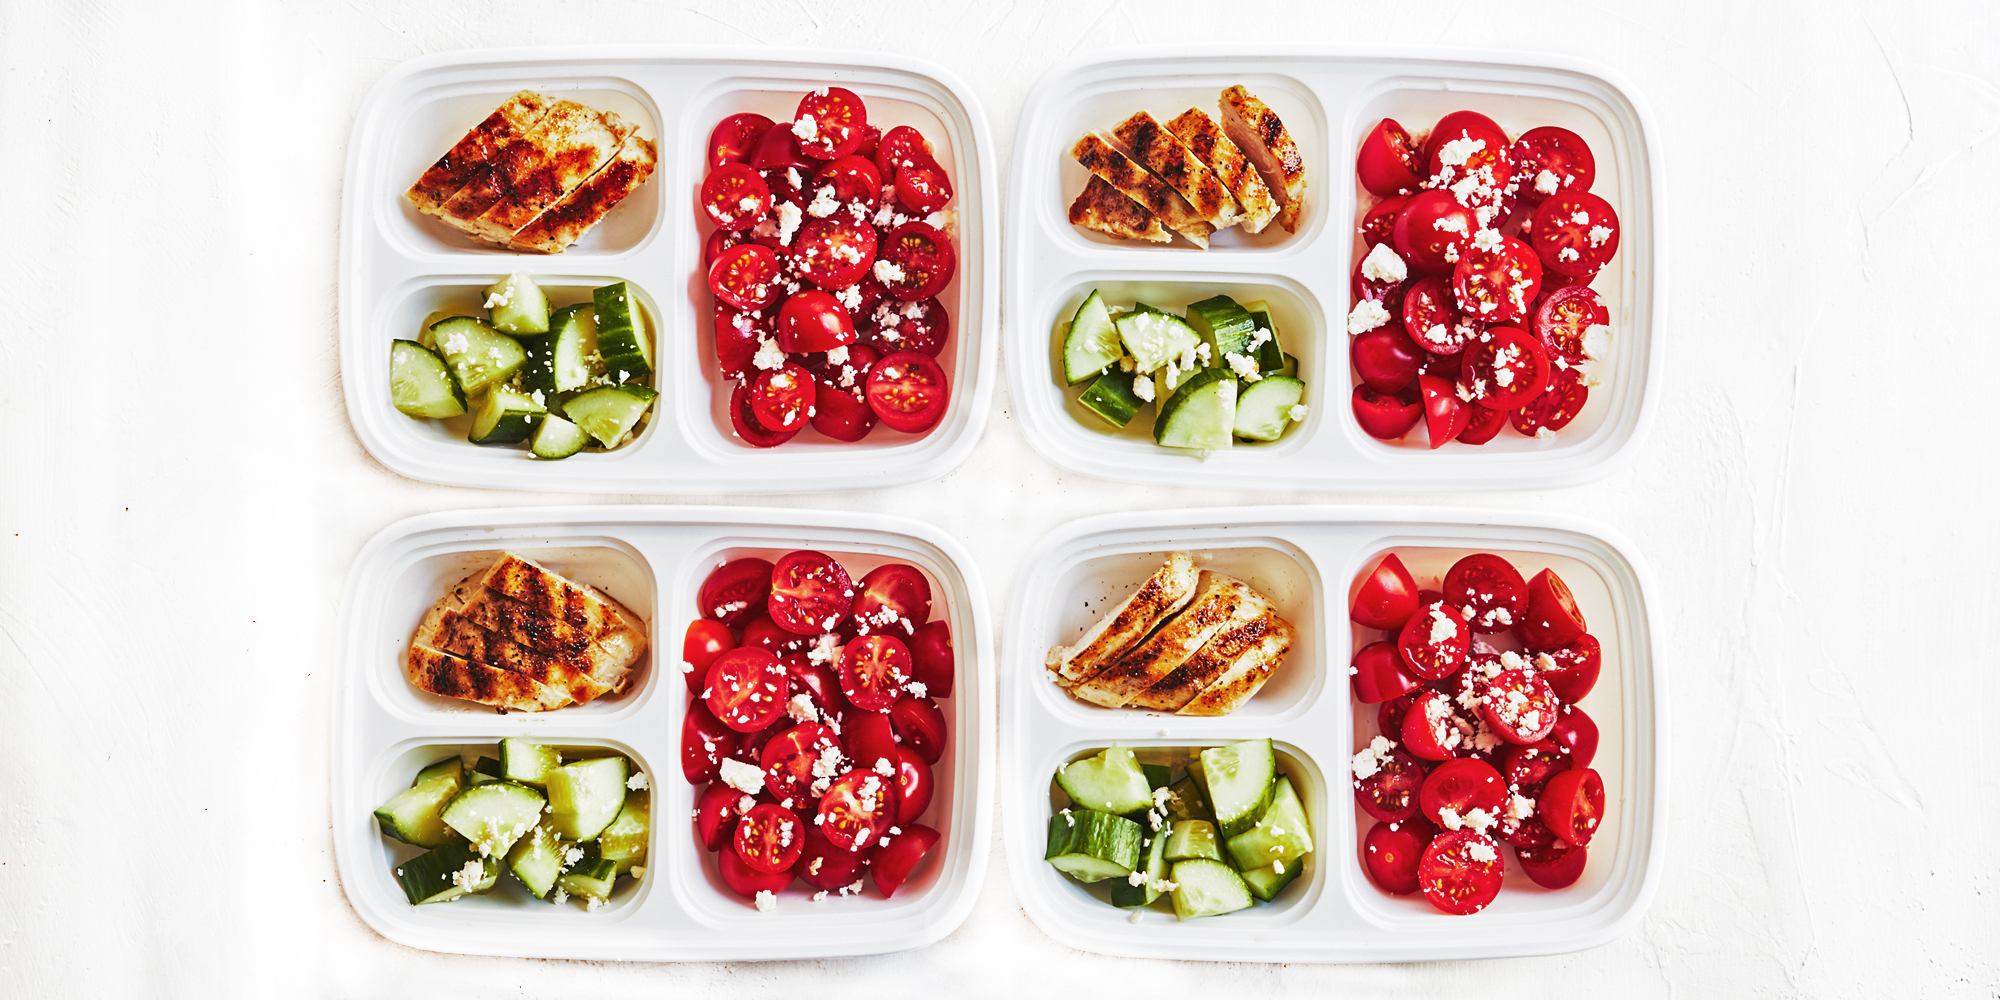 22 Healthy Meal Prep Lunch Ideas That Are Better Than Sad Desk Salads